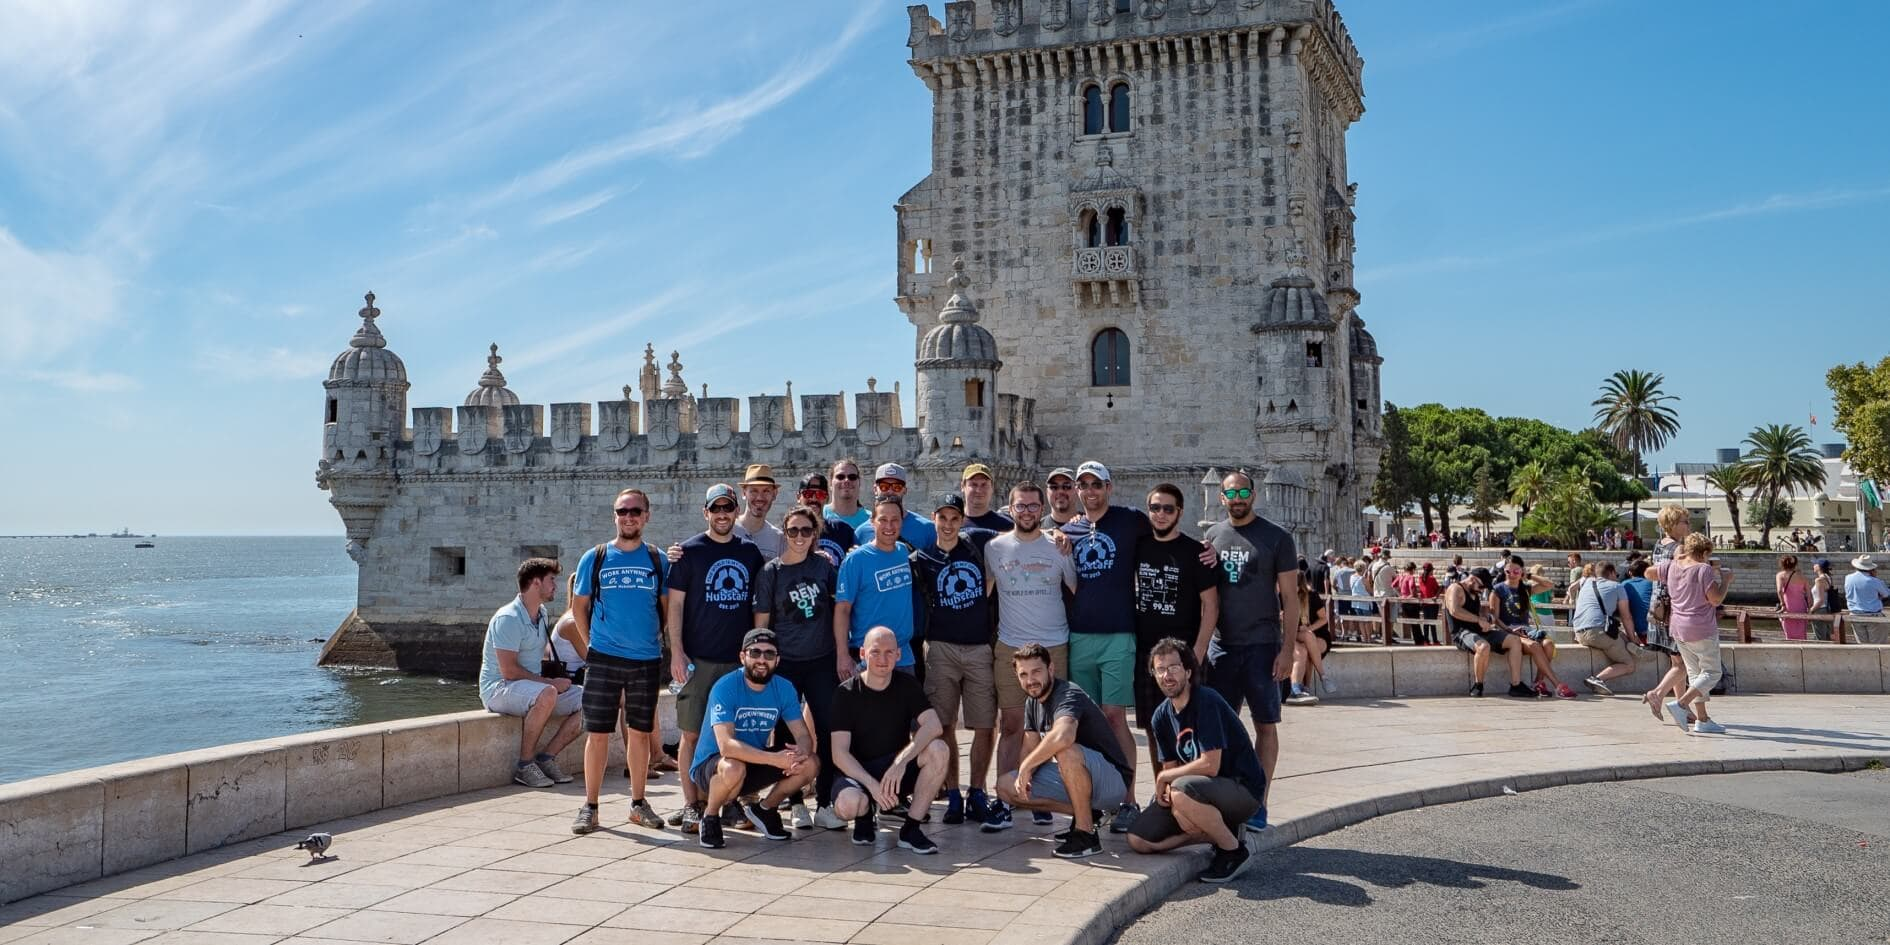 hubstaff team on annual retreat in front of tower belem